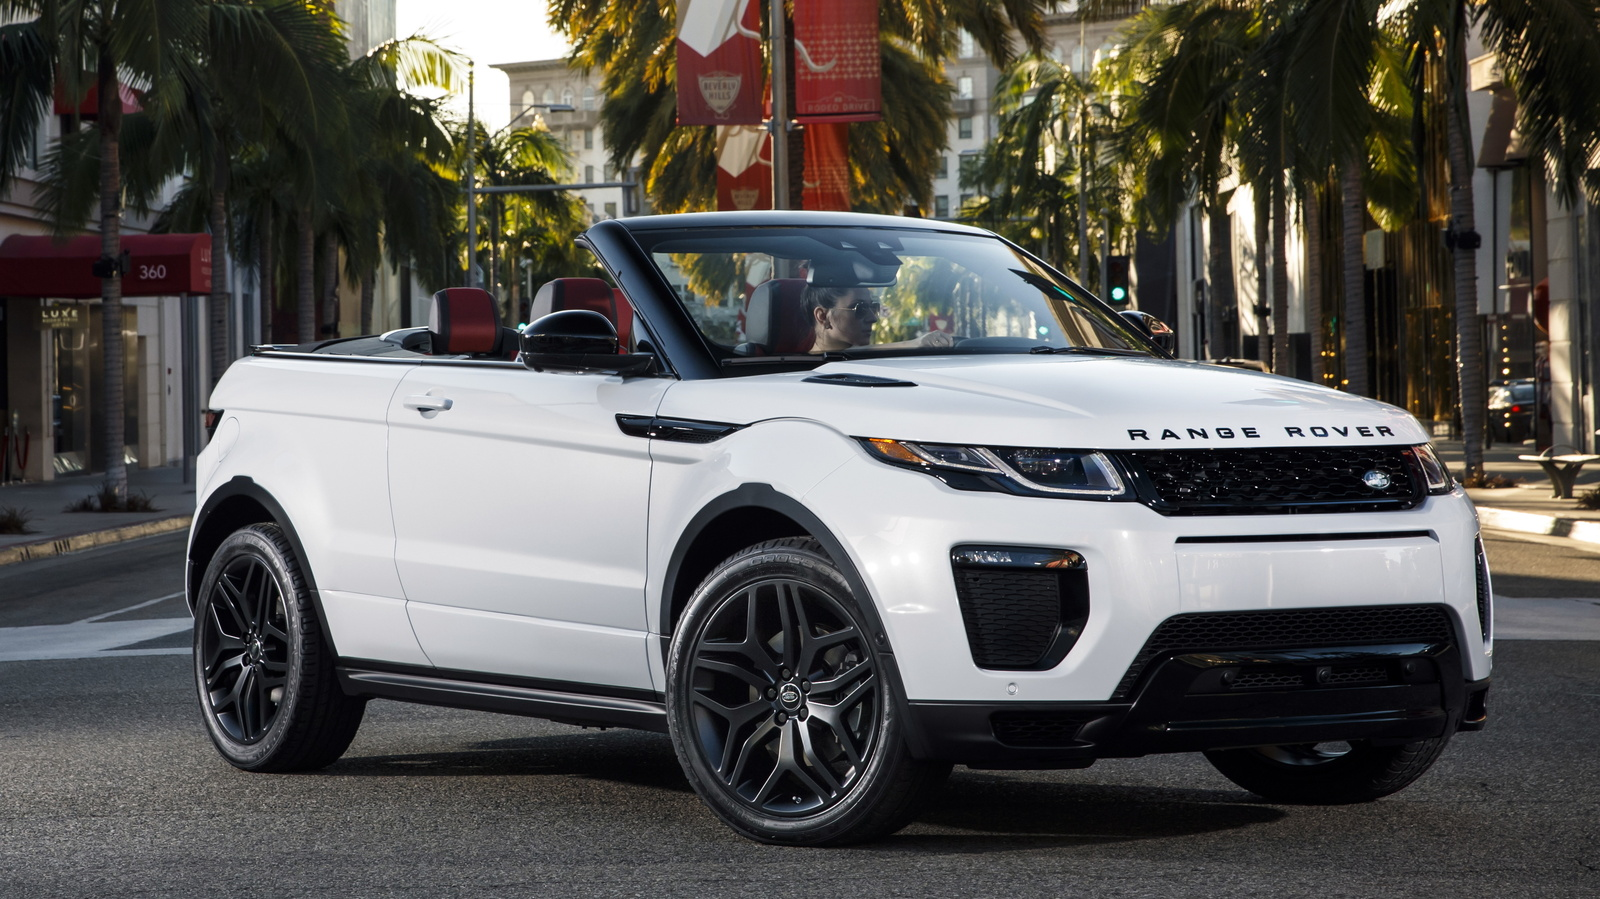 2017 land rover range rover evoque for sale in los angeles ca cargurus. Black Bedroom Furniture Sets. Home Design Ideas